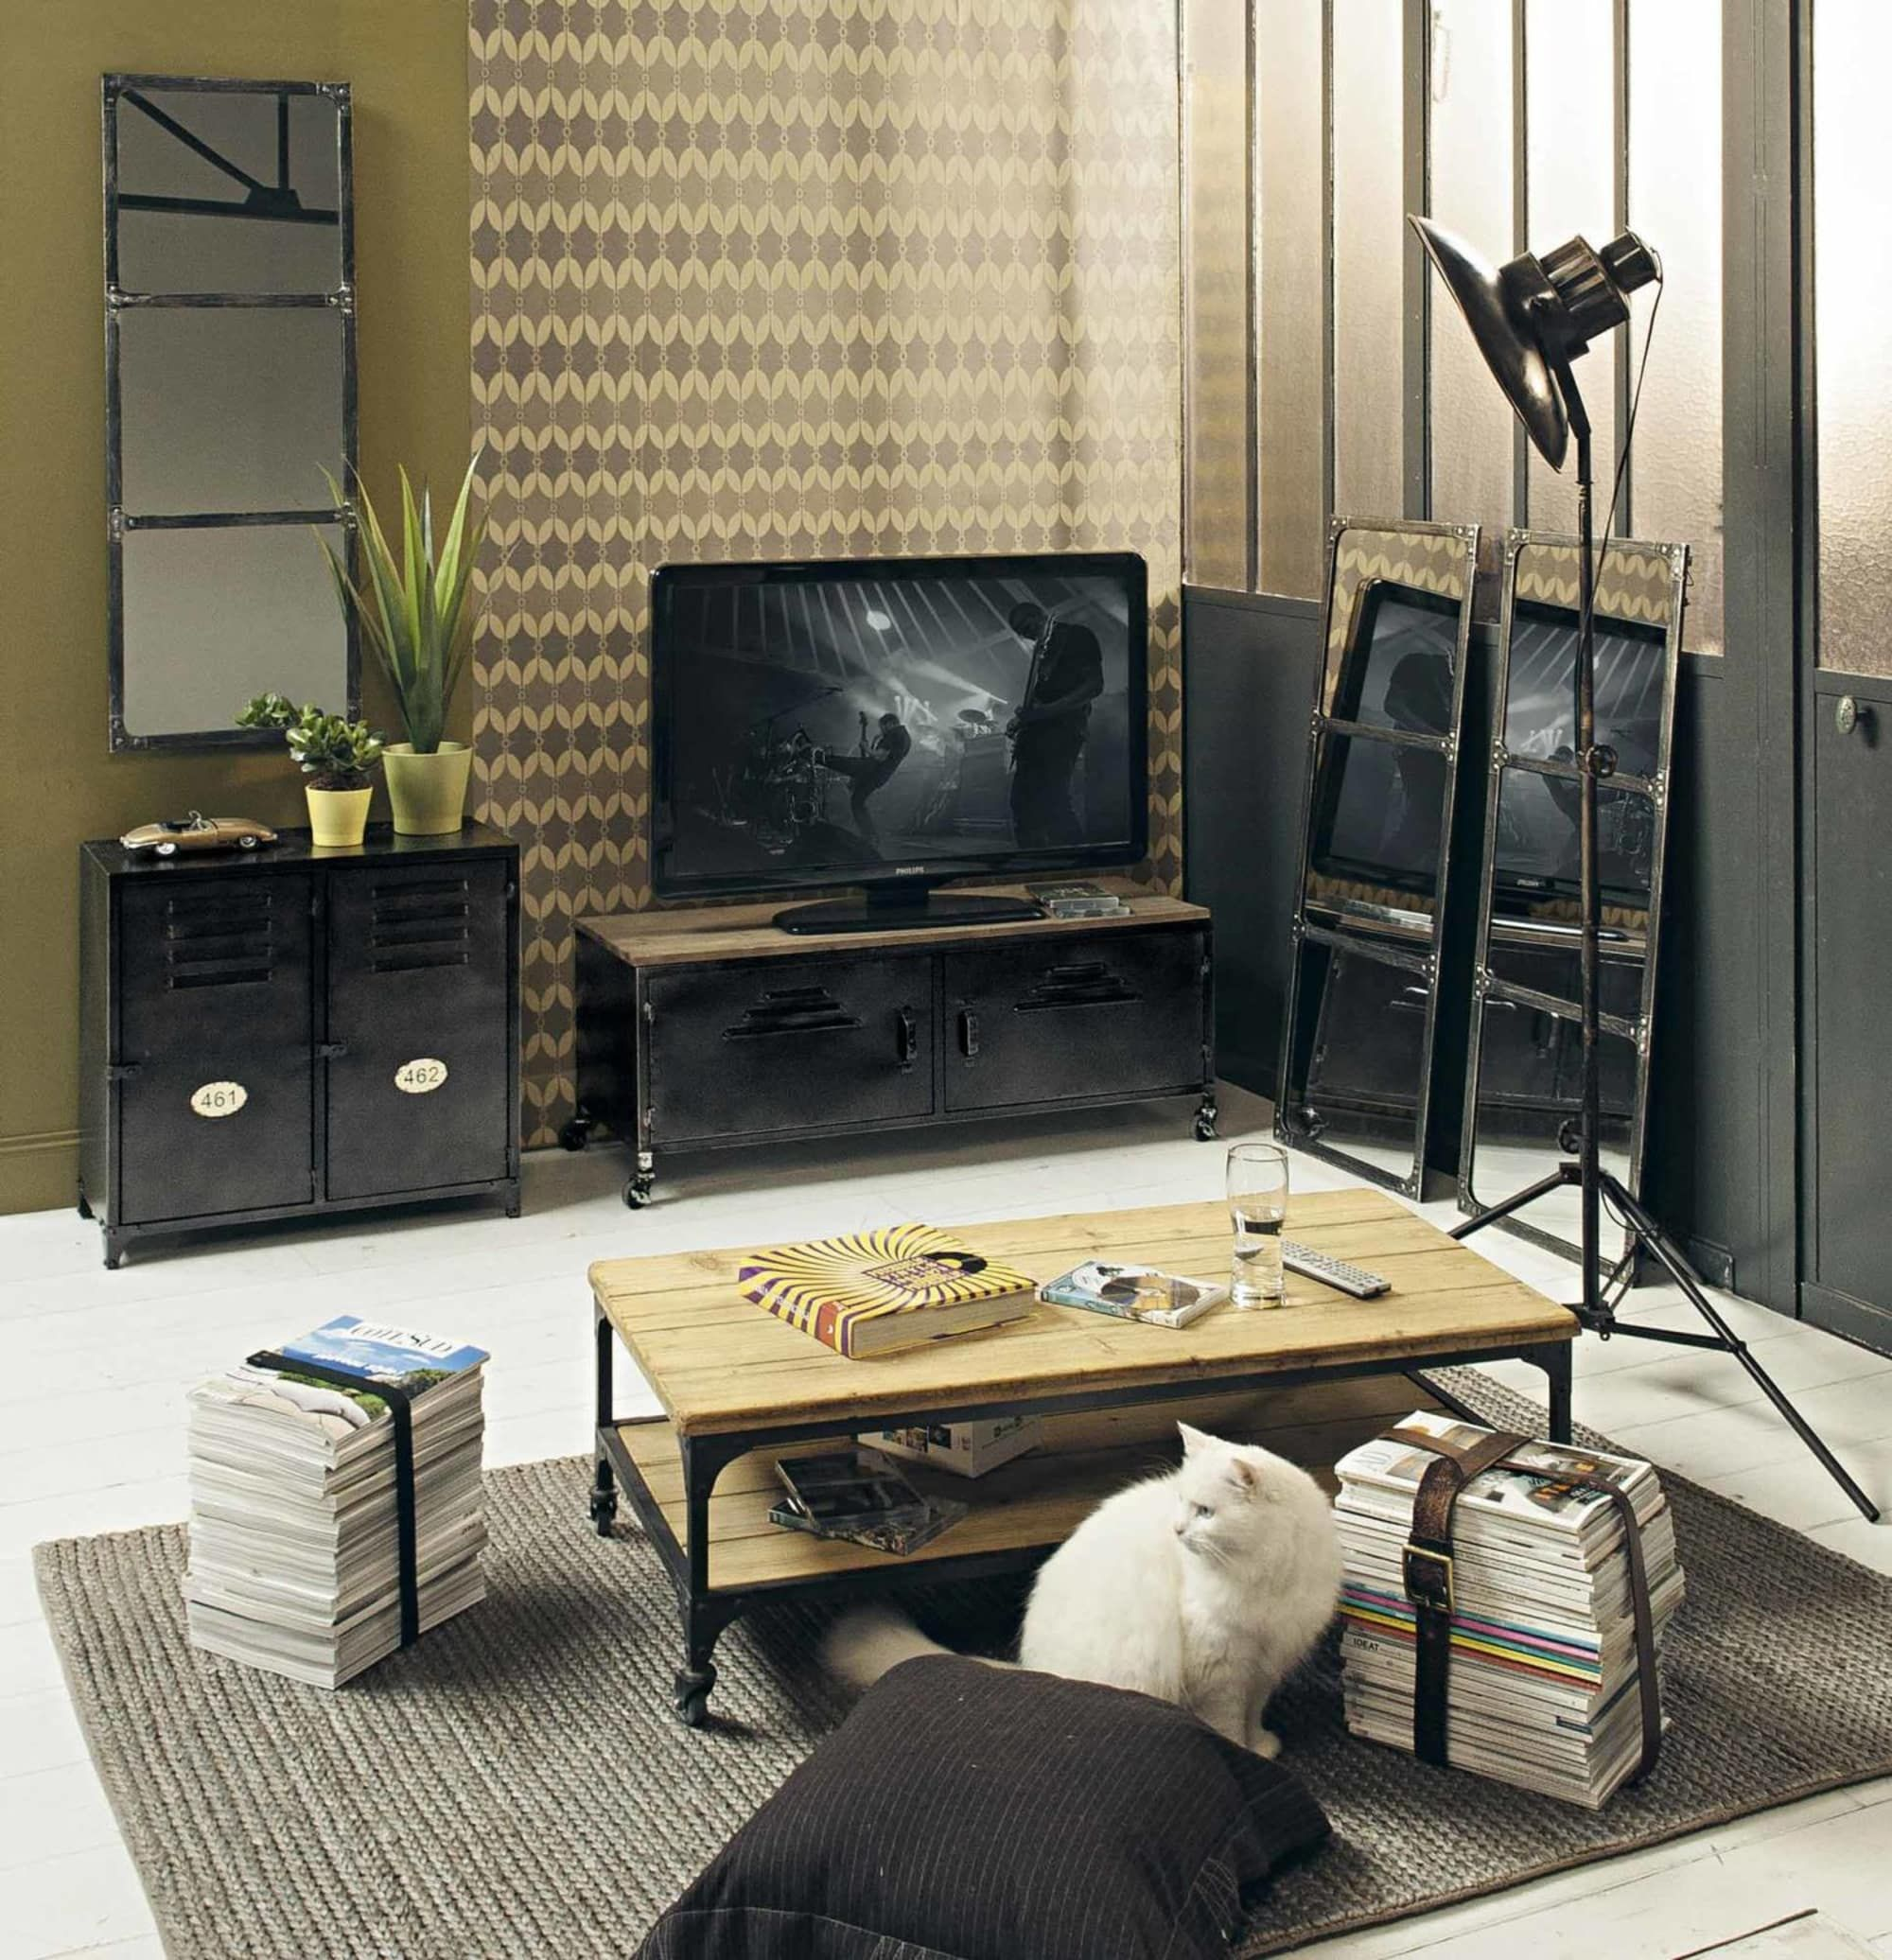 Mueble De Tv Industrial Con Ruedas De Metal Y Abeto Wayne Meubels Interieur Salontafel